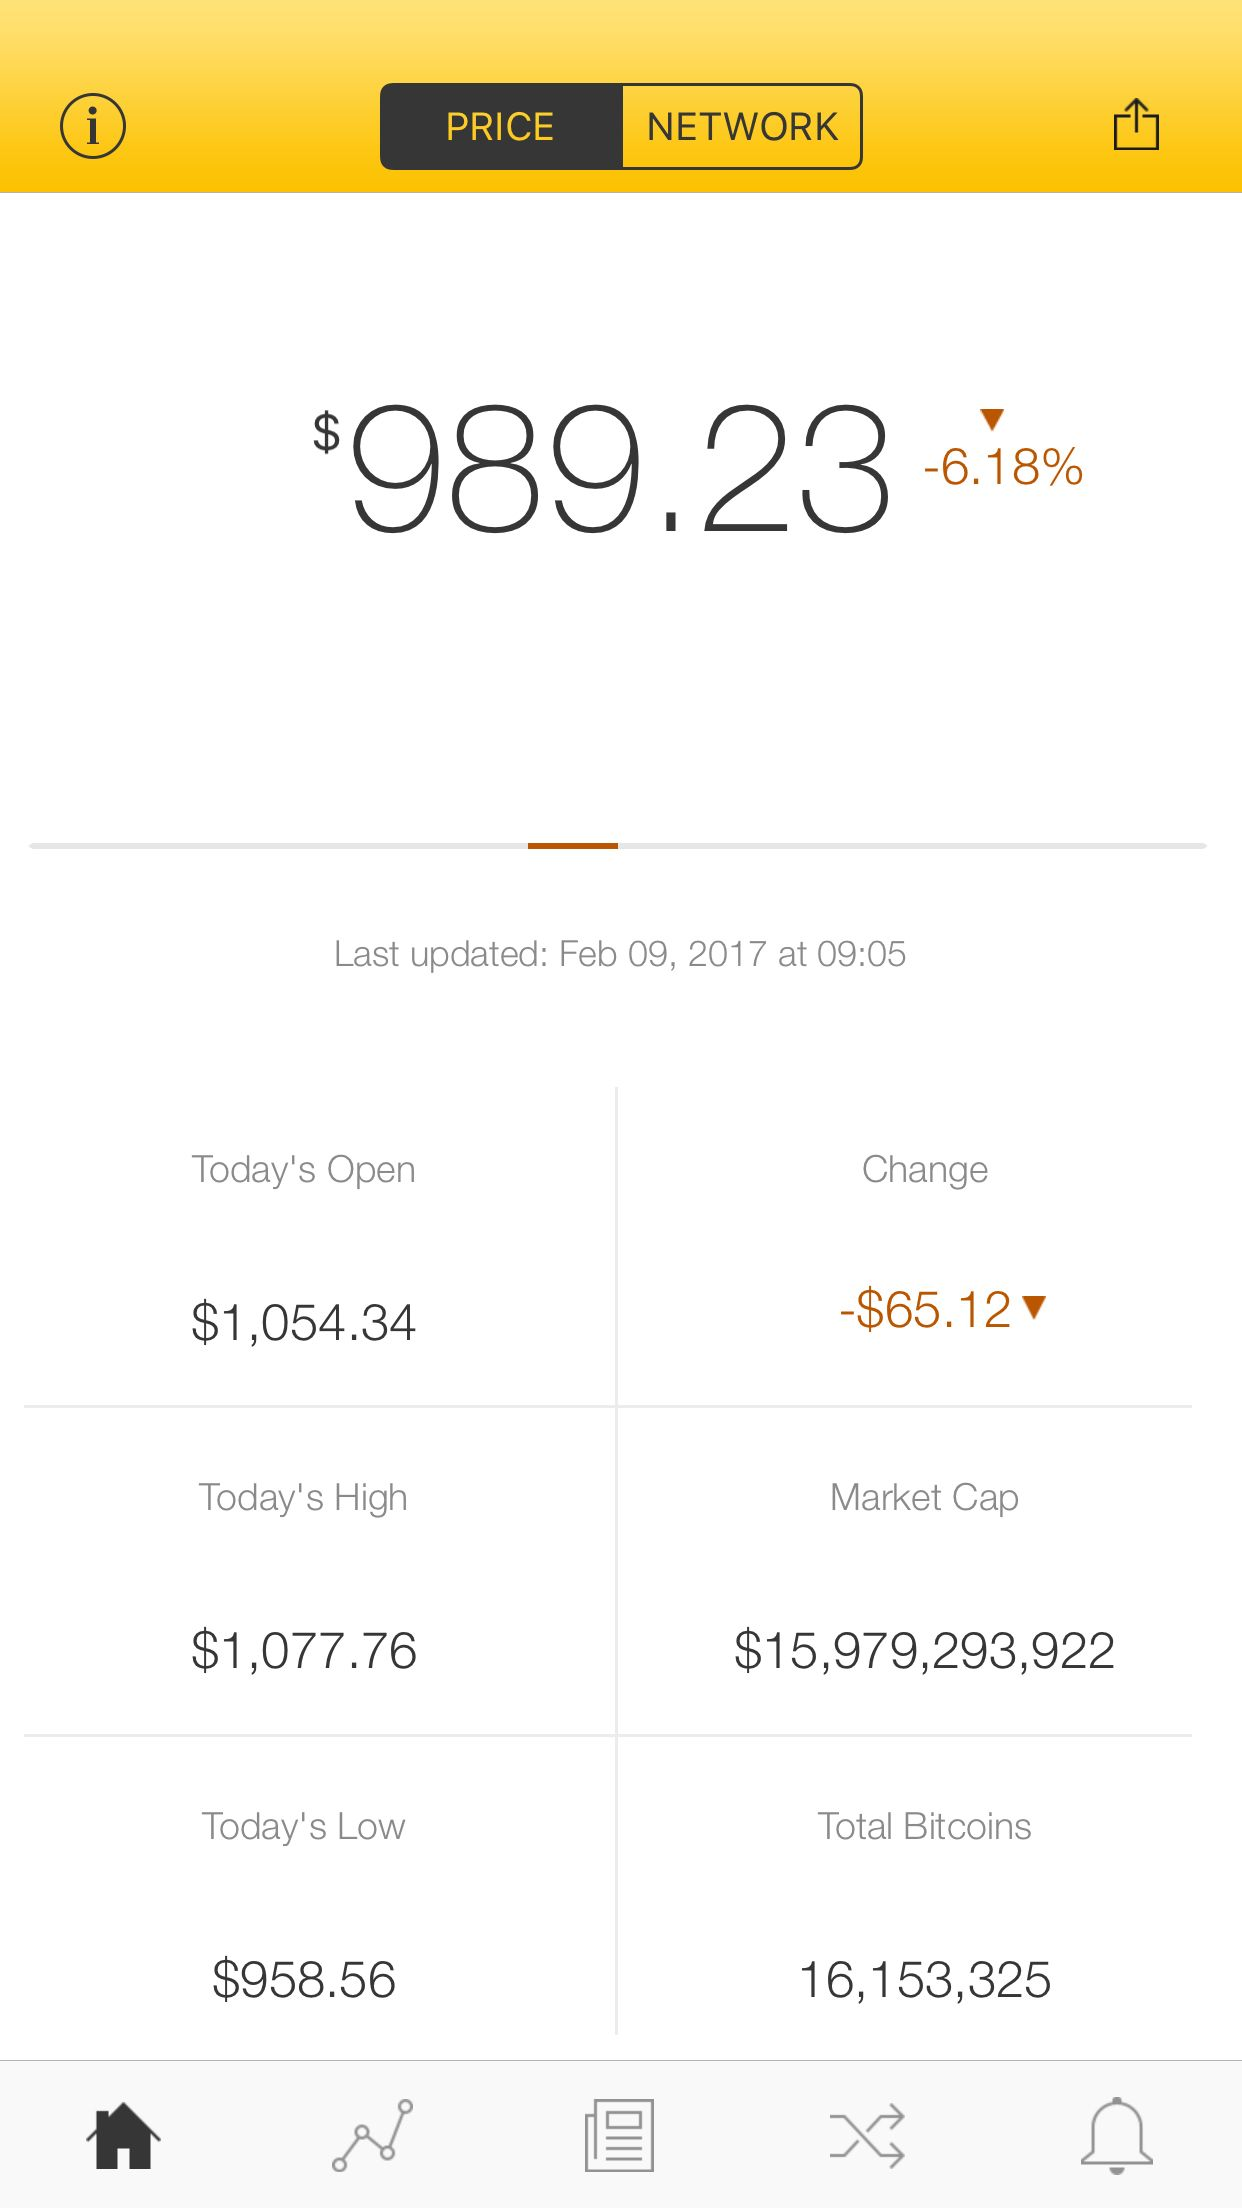 The latest Bitcoin Price Index is 989.23 USD http://www.coindesk.com/price/ via @CoinDesk App